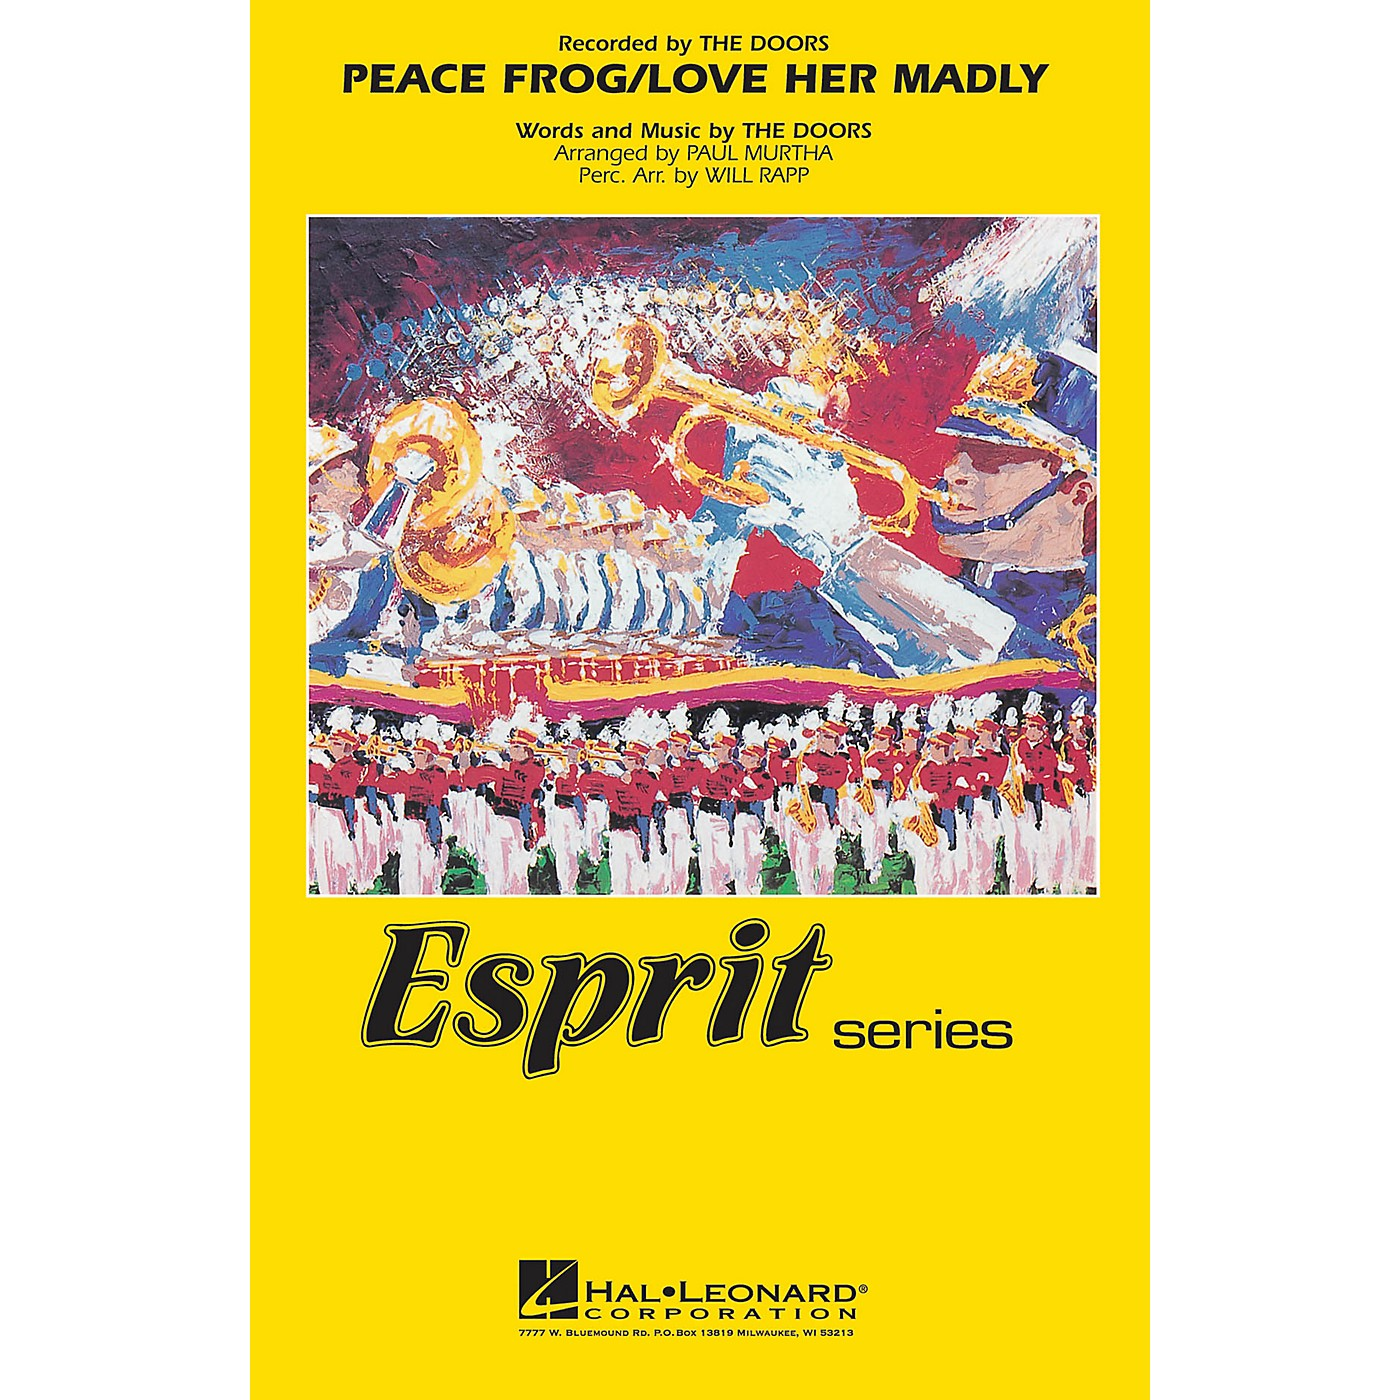 Hal Leonard Peace Frog/Love Her Madly Marching Band Level 3 by The Doors Arranged by Paul Murtha thumbnail